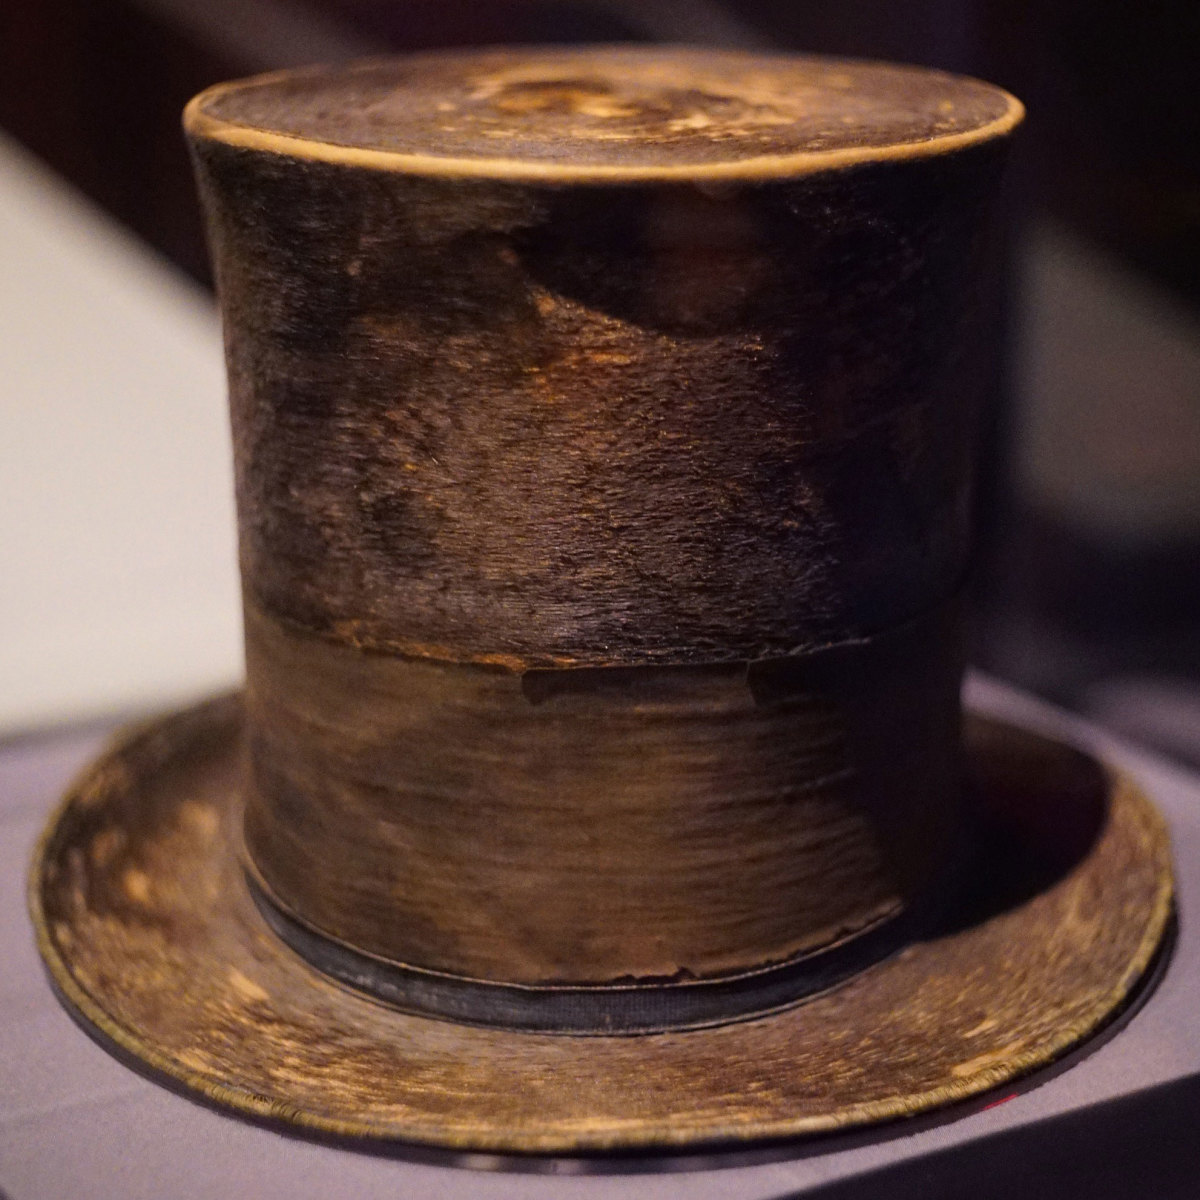 Abraham Lincoln's top hat, worn the night of his assassination, seen at the Ford's Theatre Center for Education and Leadership in Washington, D.C., 2015.